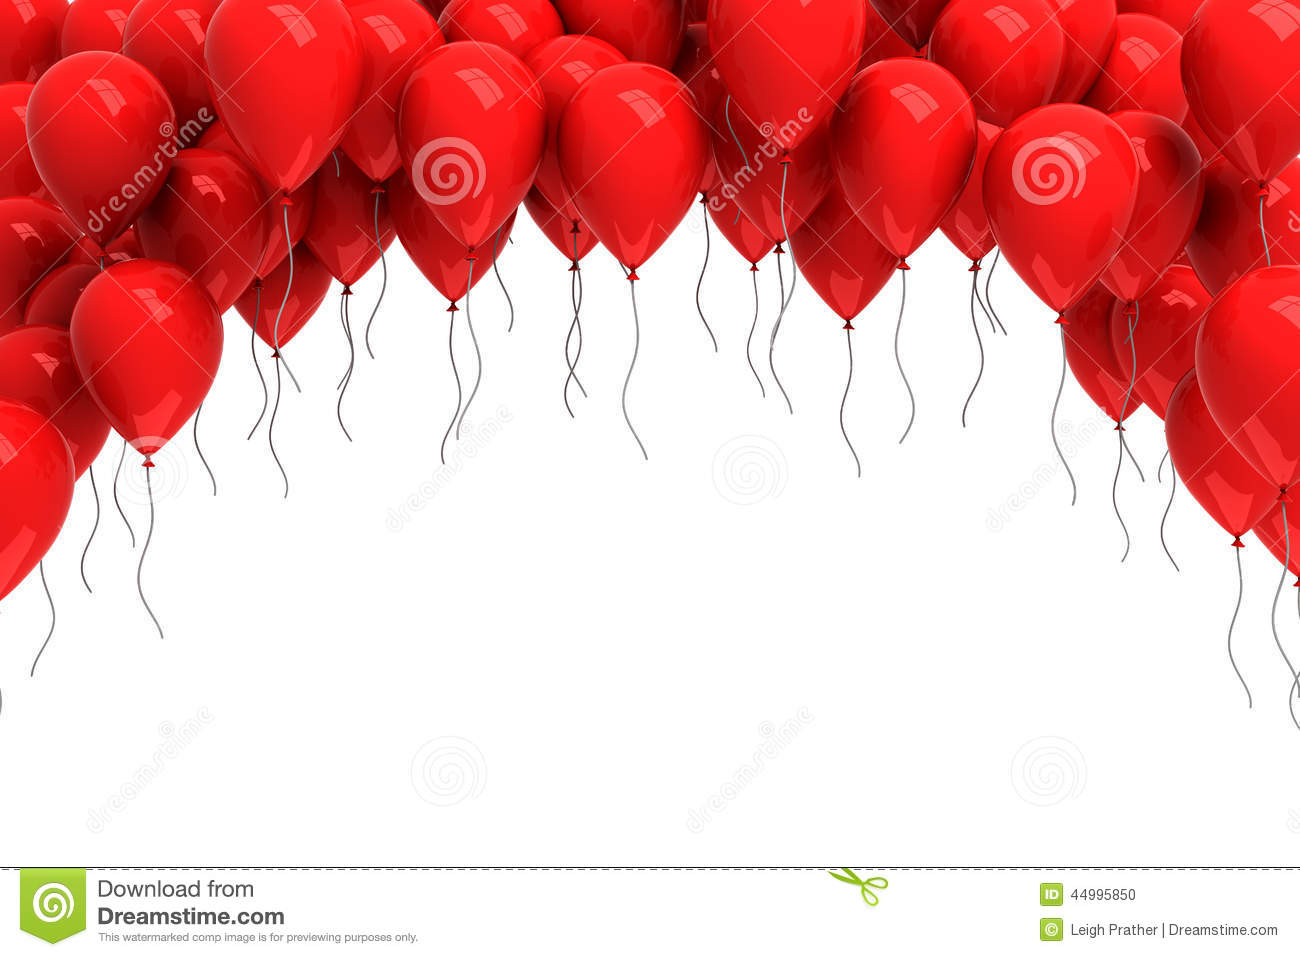 Birthday Cake Wallpaper 3d Download Background Of Red Balloons Stock Illustration Image